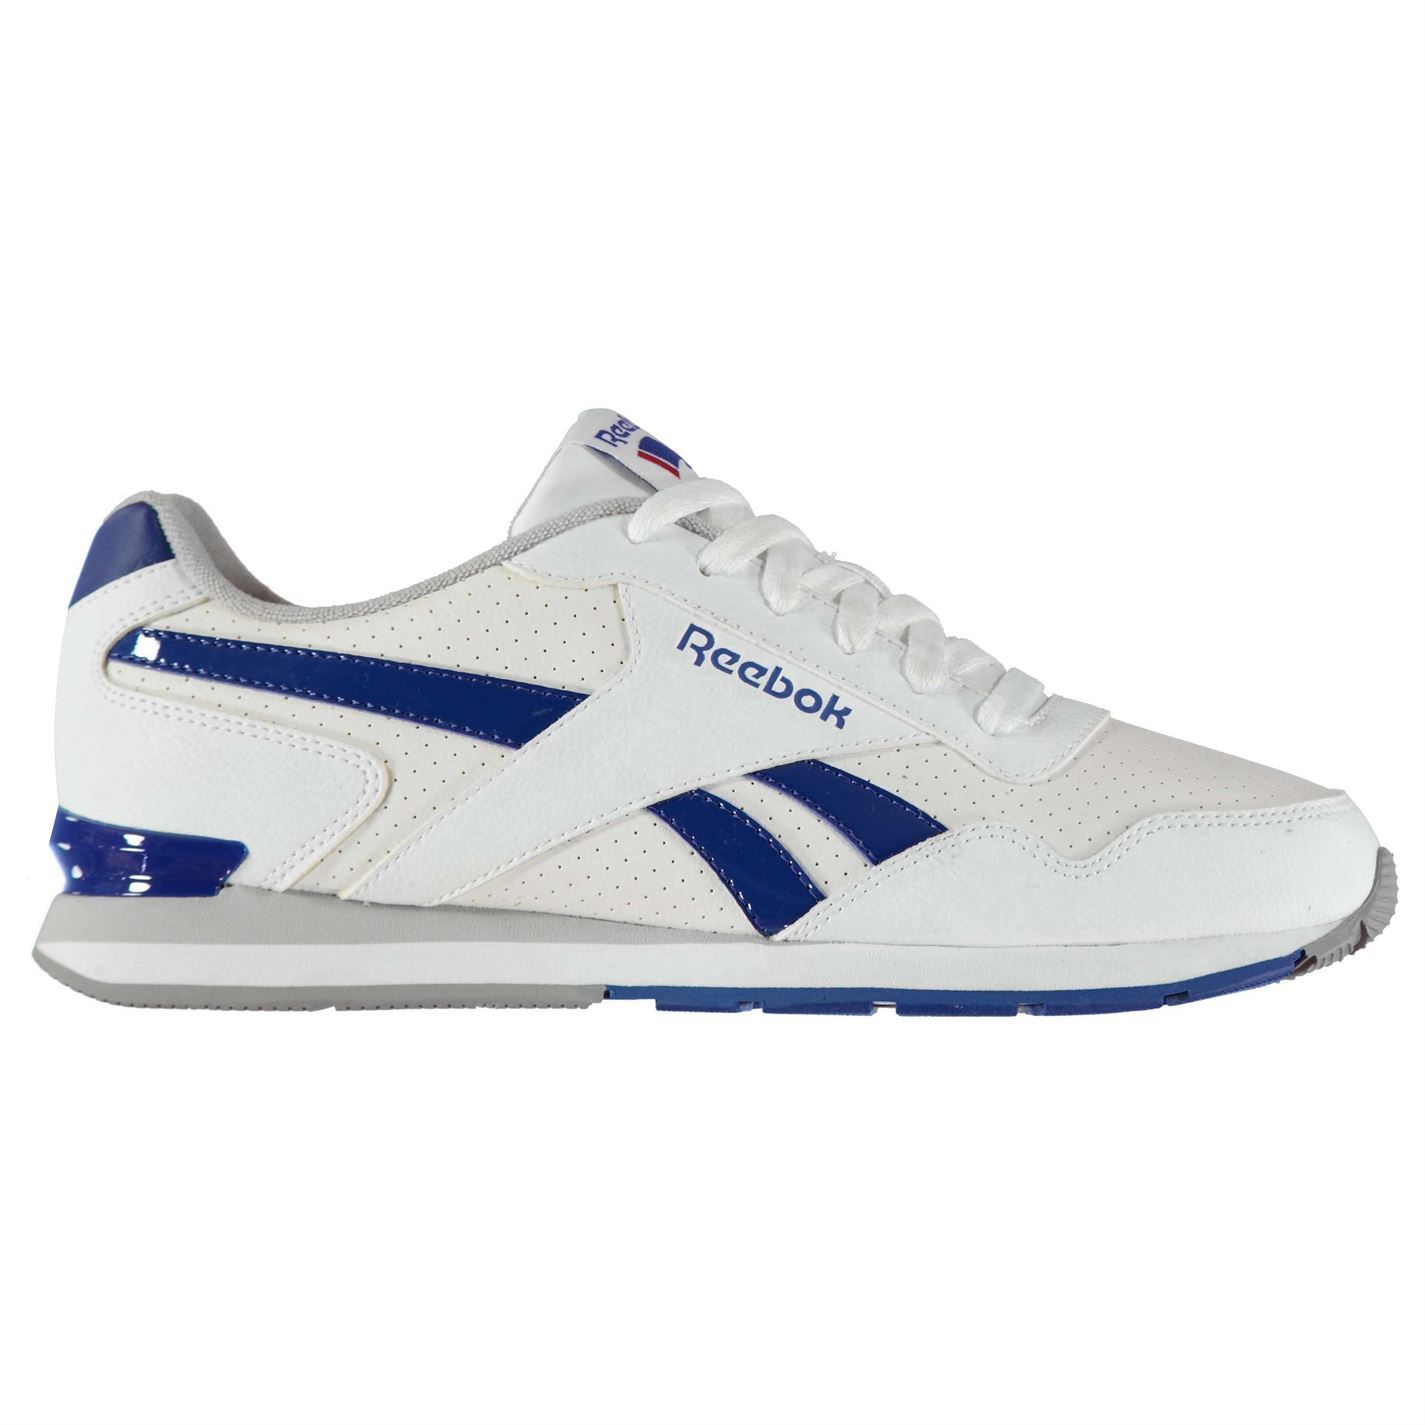 Details about Reebok Royal Glide Clip Perforated Trainers Mens Athleisure Shoes Sneakers